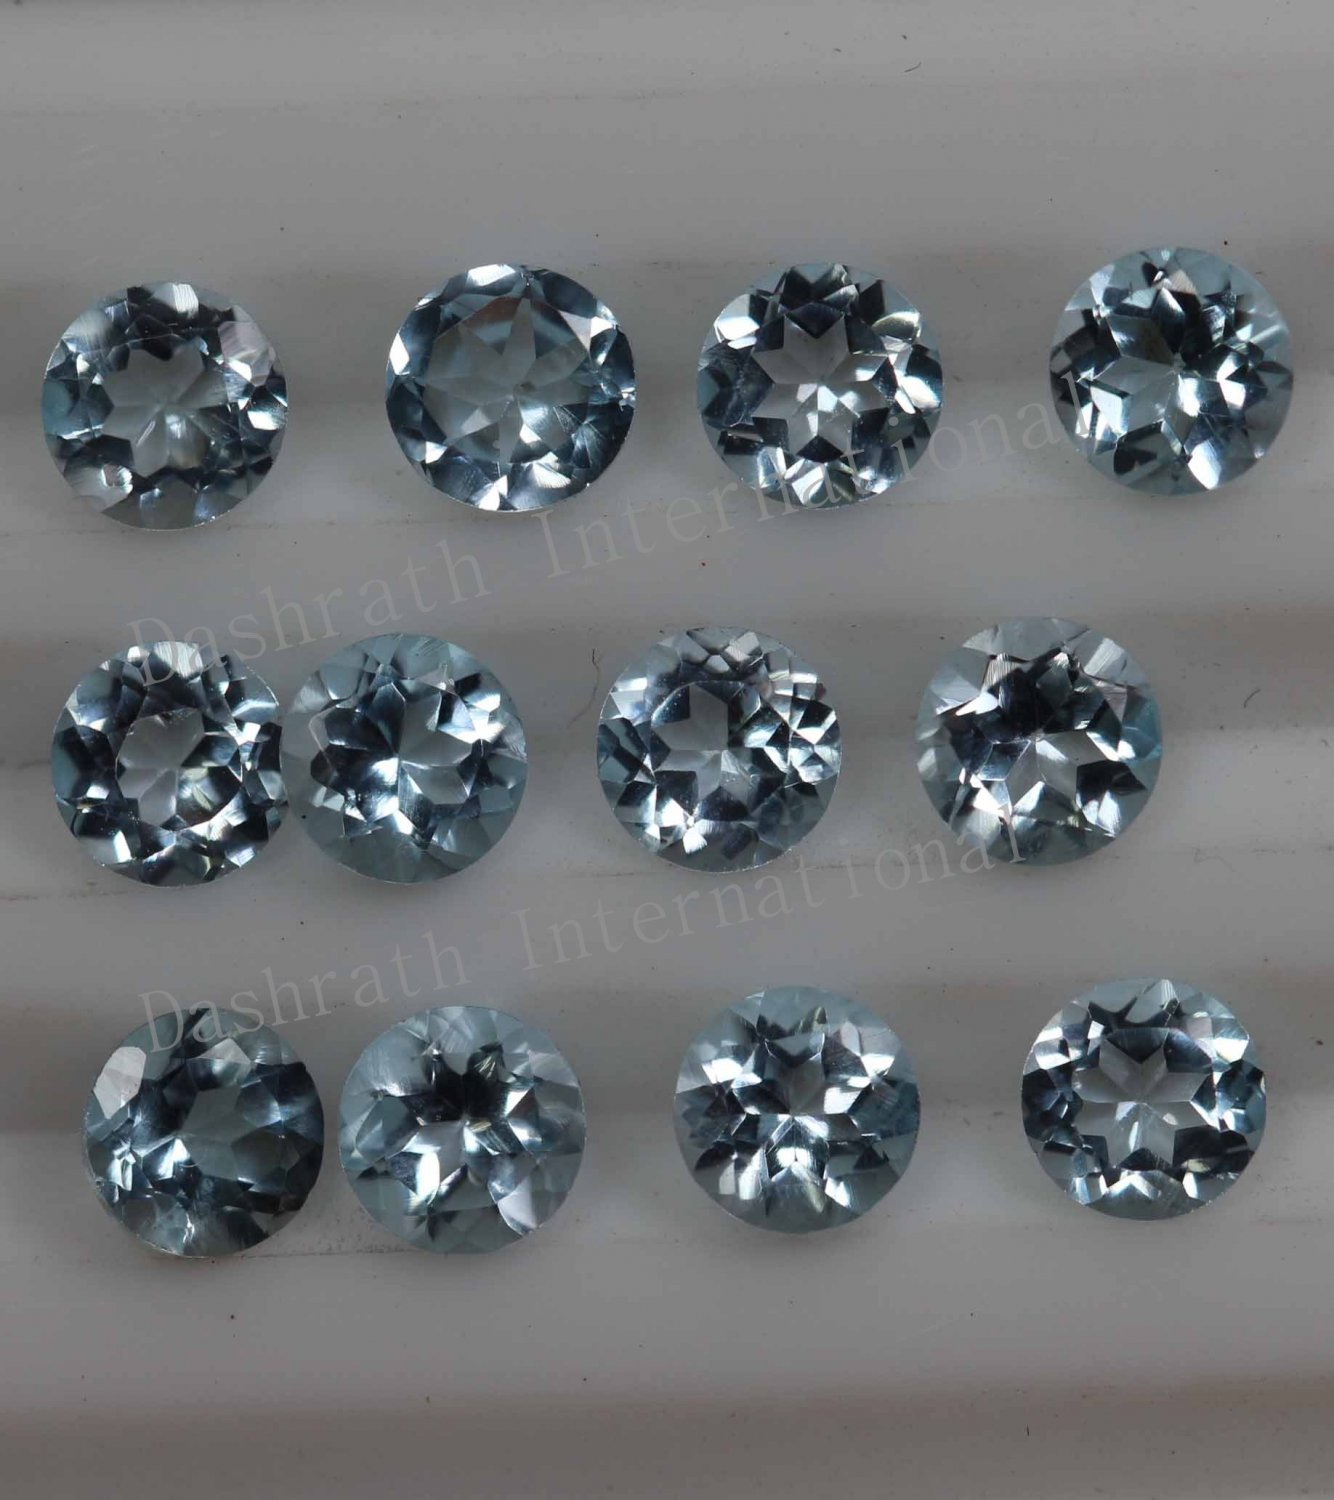 4mmNatural Sky Blue Topaz Faceted Cut Round 5 Pieces Lot Blue Color  Top Quality Loose Gemstone